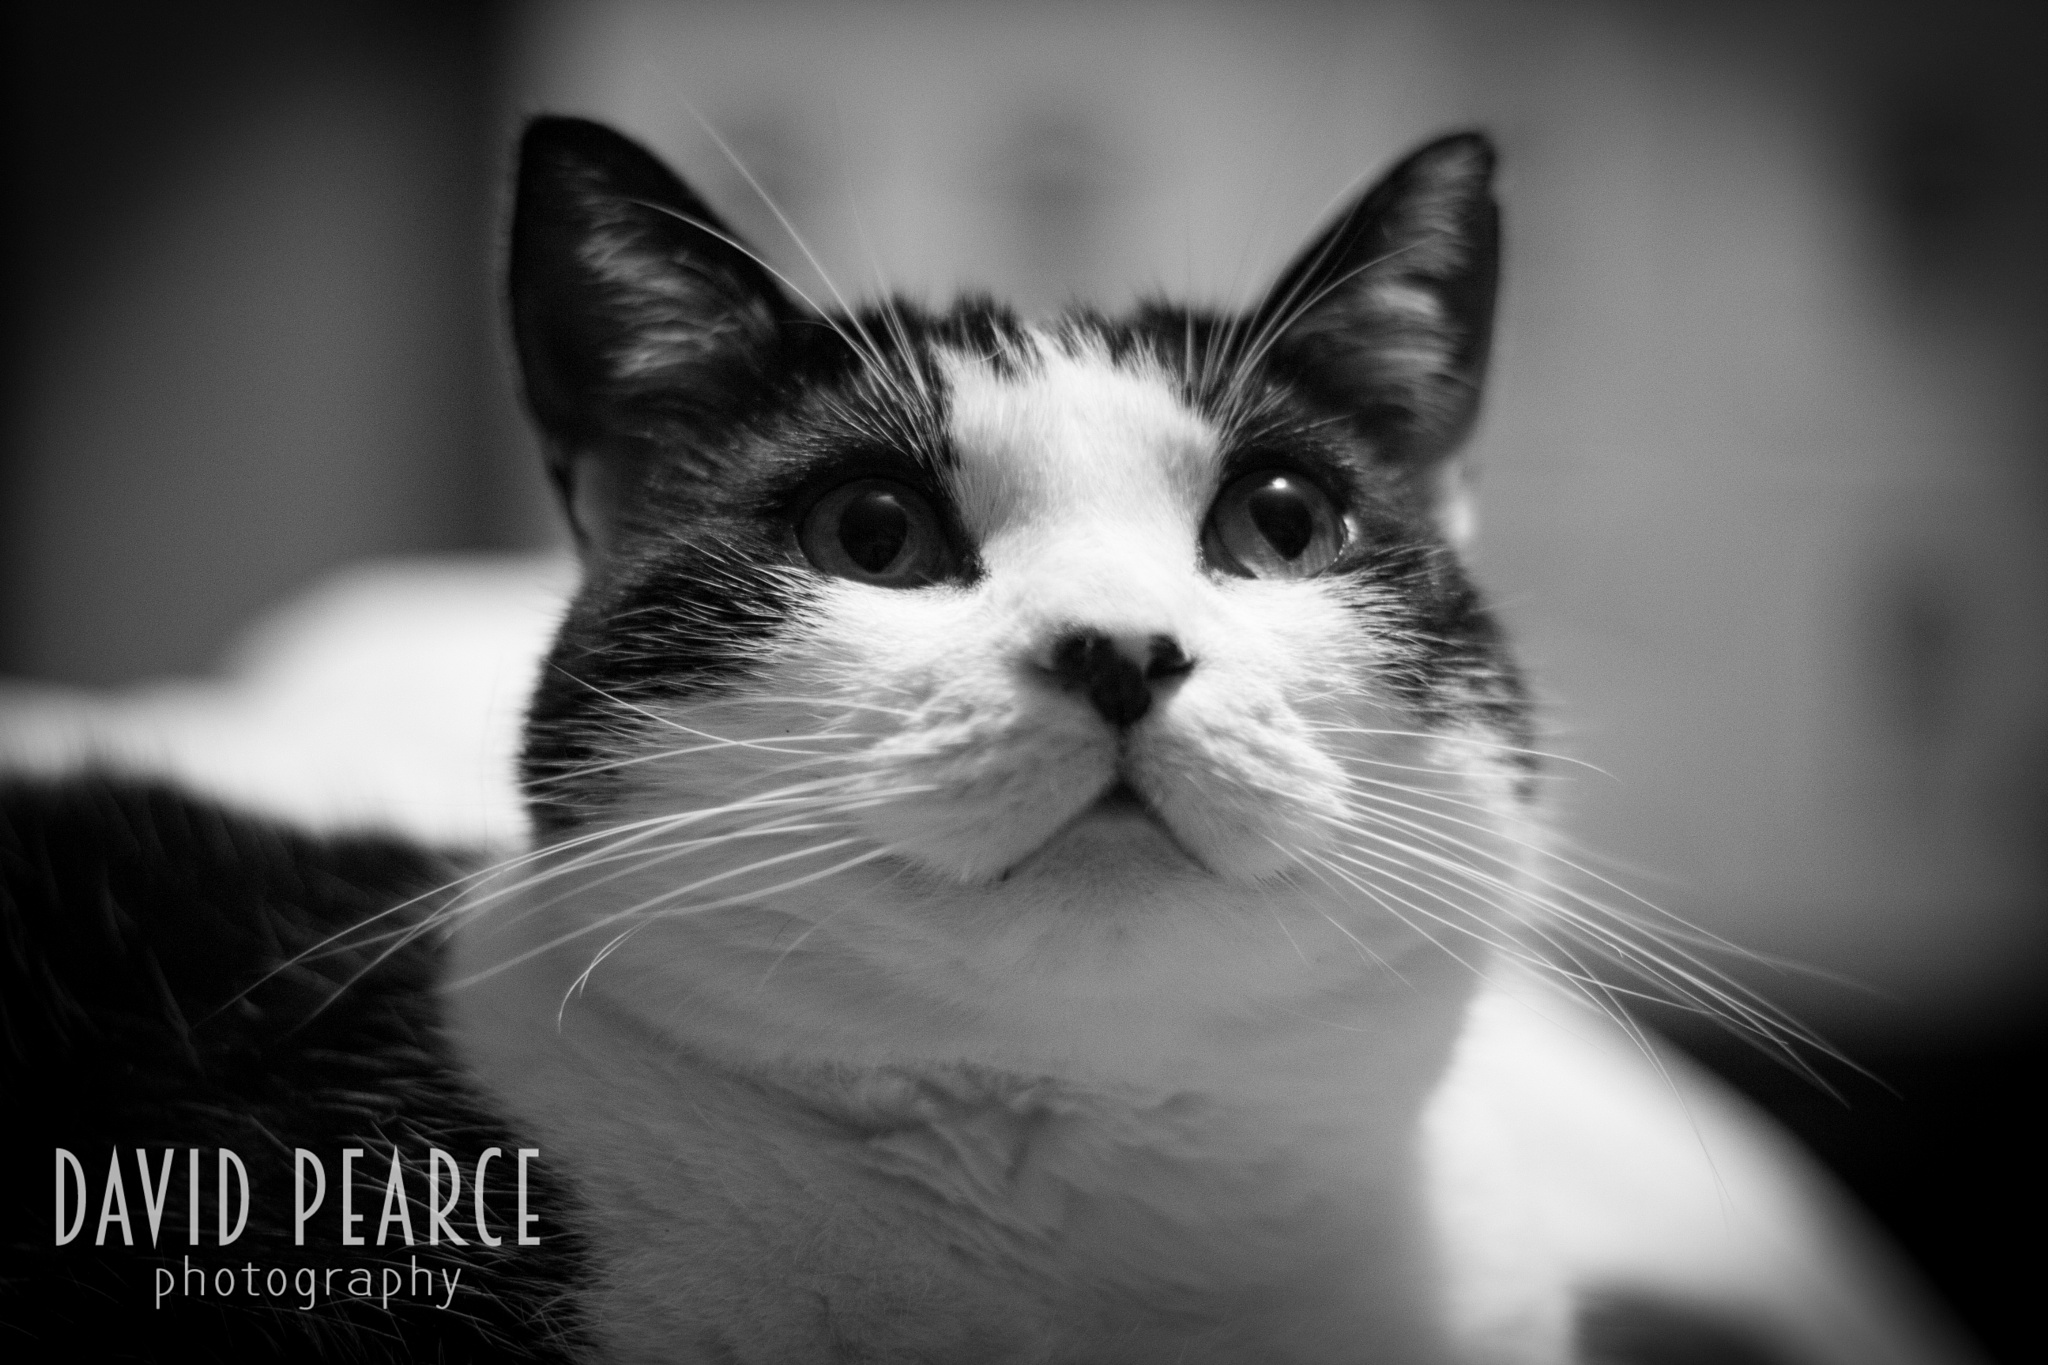 Sydney the cat by David Pearce